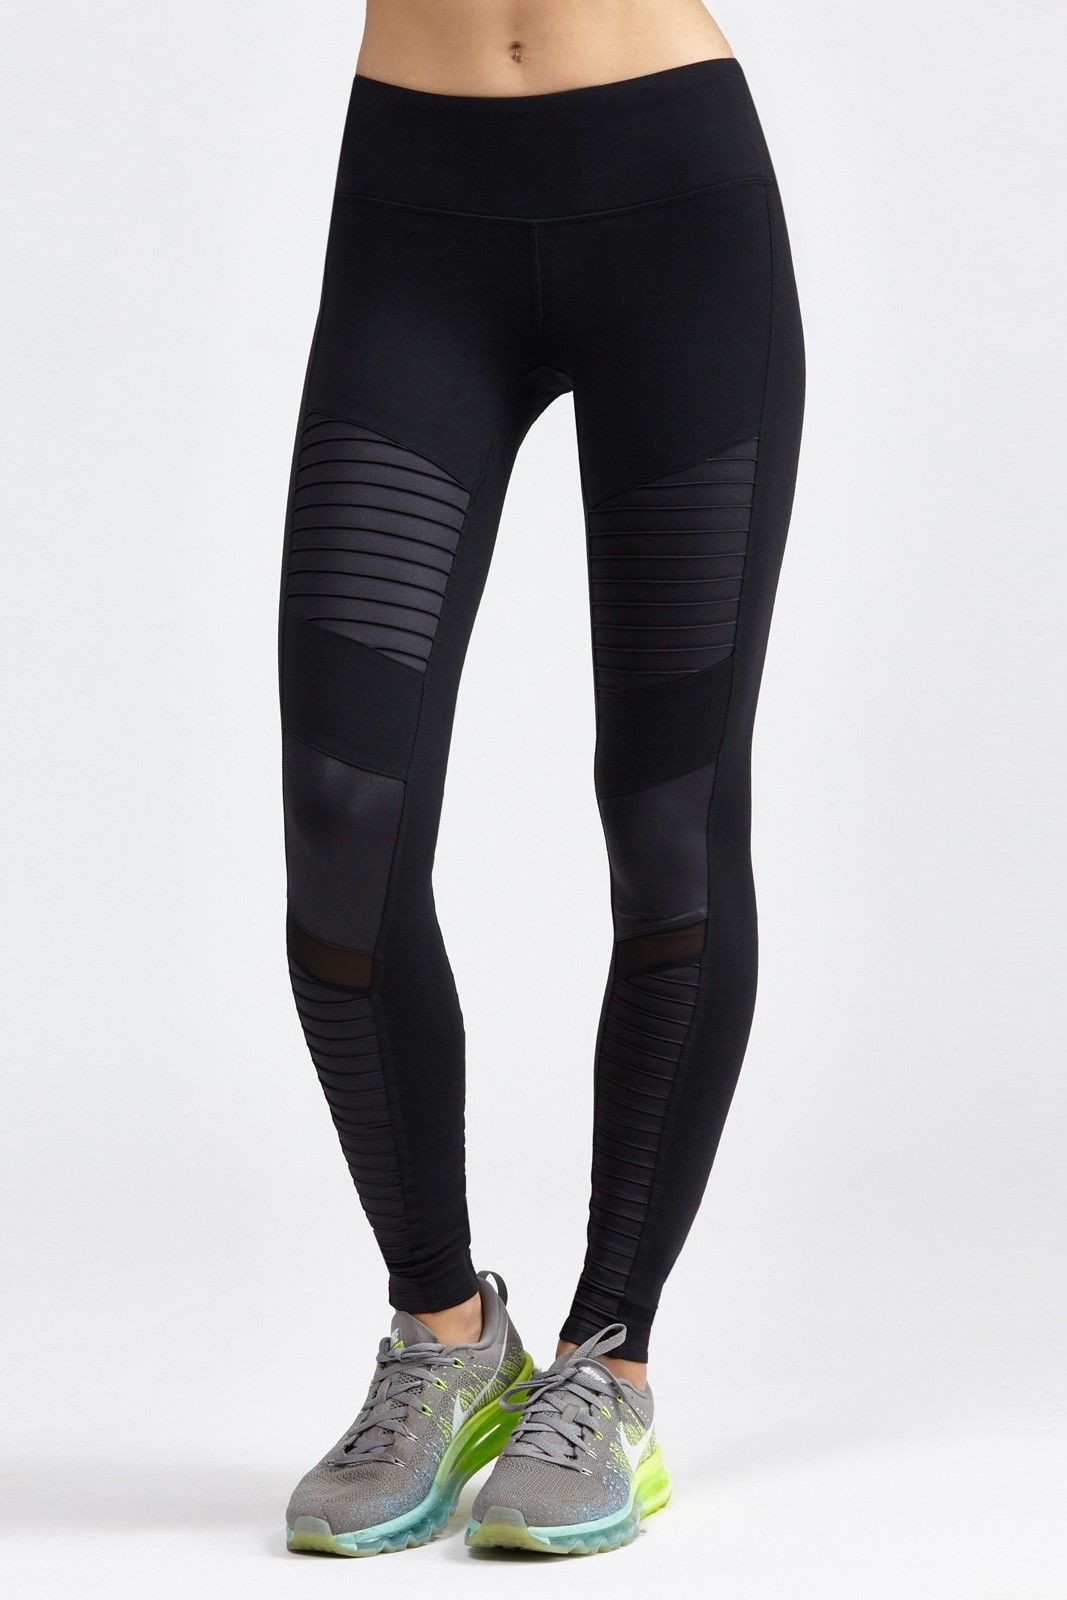 01909f2ea799 ALO s Moto Legging is an on-trend motorcycle inspired legging that features  quilted-style stitchi.